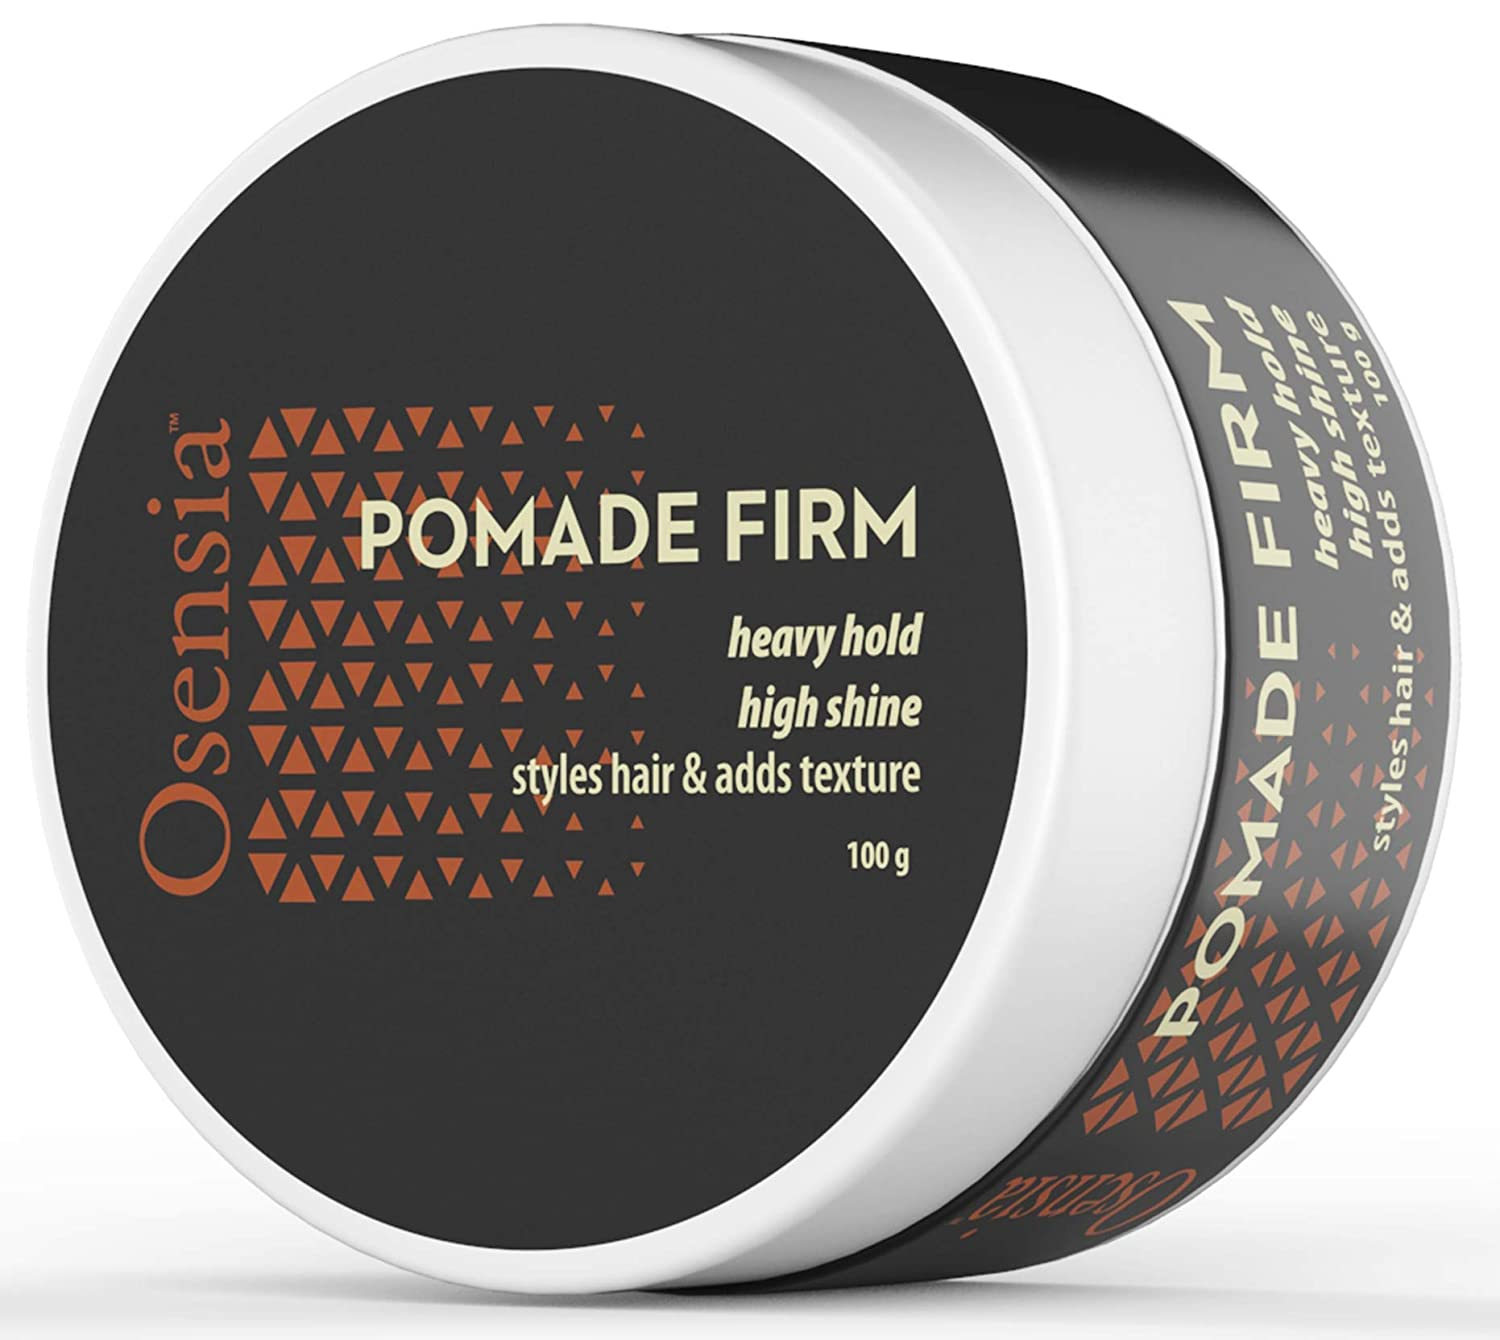 Pomade Firm Strong Hold Hair Wax - High Shine, High Hold Pomade for Men - Styling Gel, No Flakes or Residue, Washes Out Easy - Alcohol and Paraben Free Water Based Pomade Gel by Osensia, 3.4 Ounces